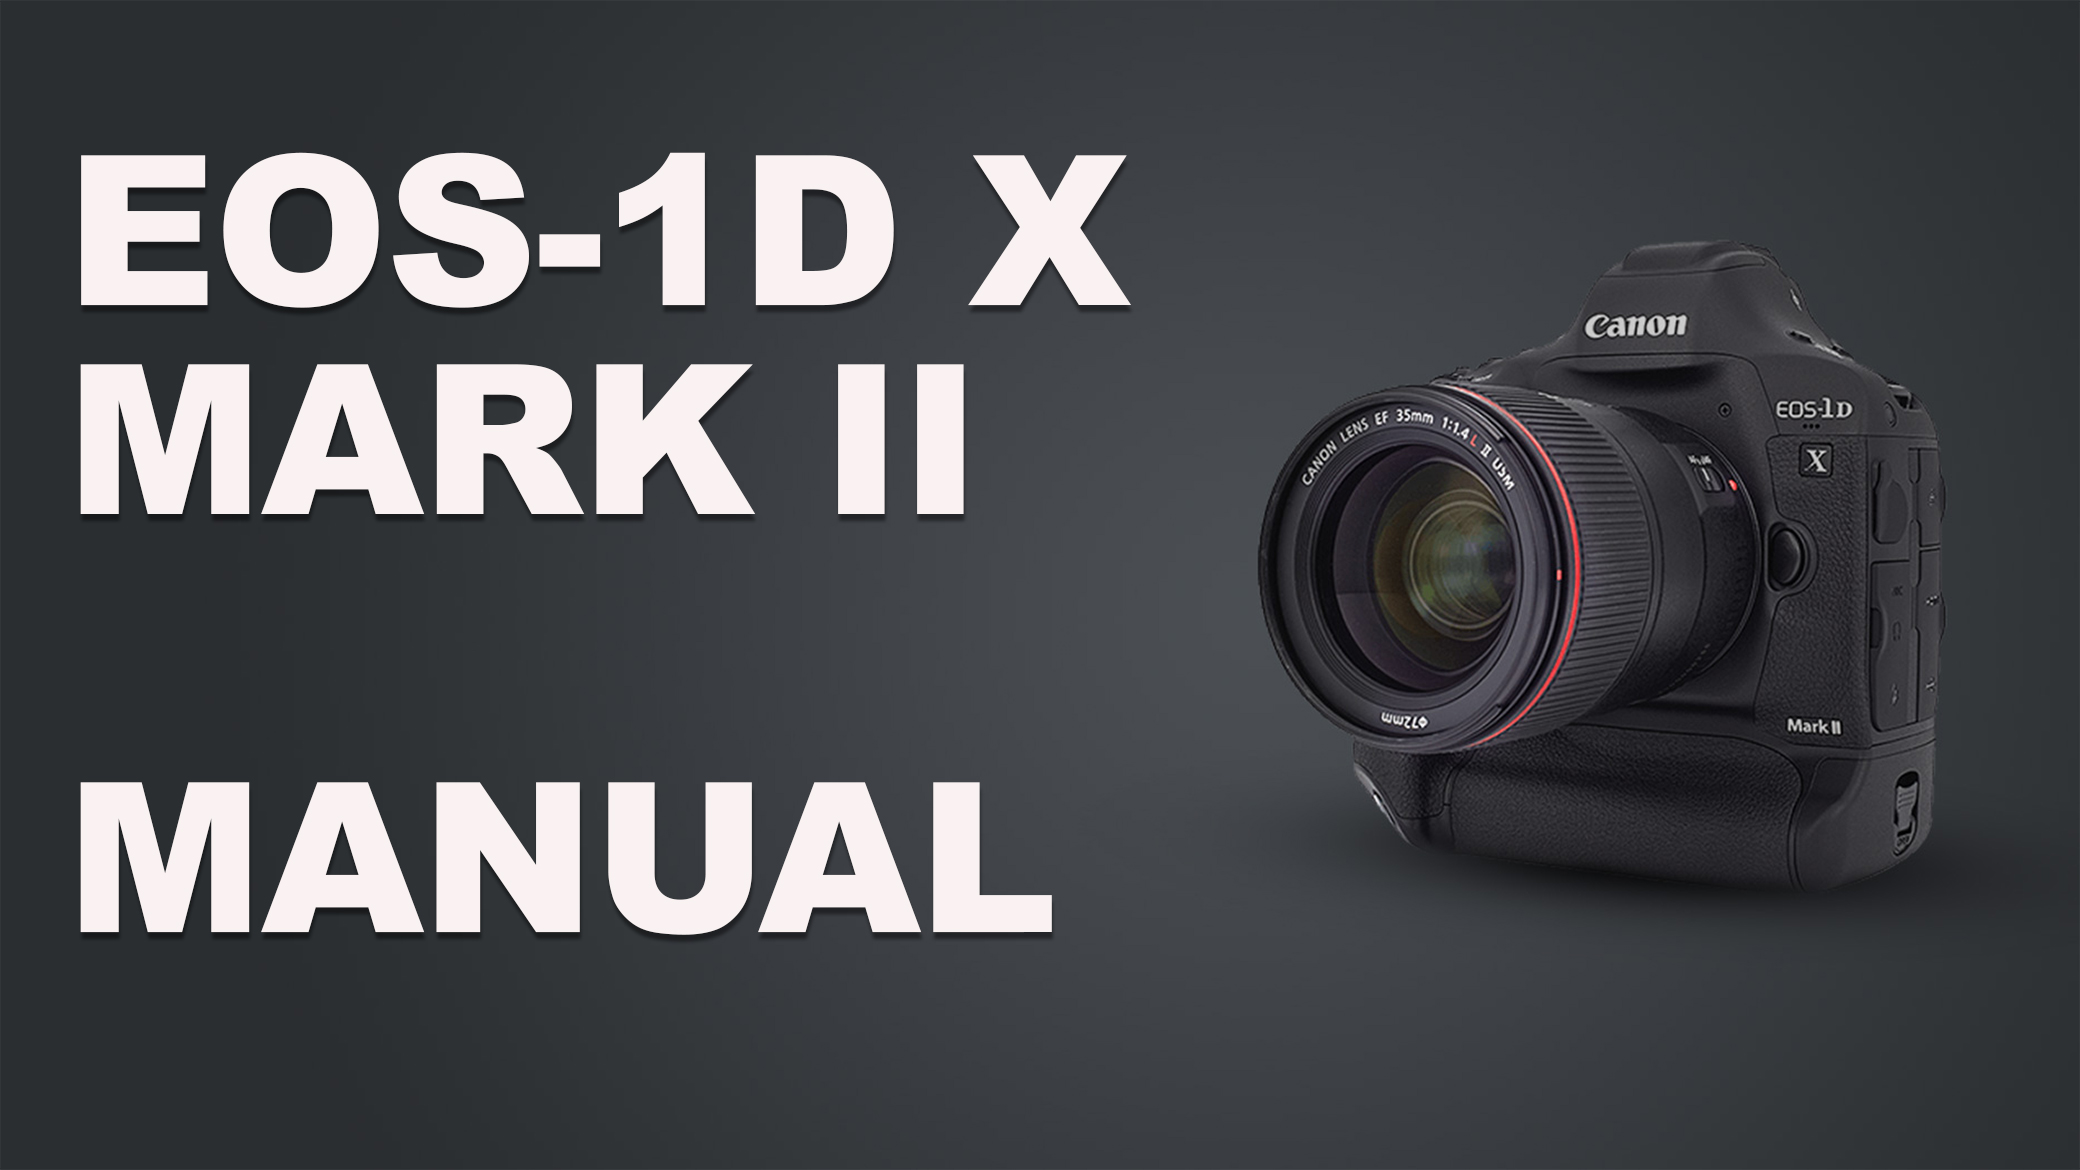 Manual available for EOS-1D X Mark II